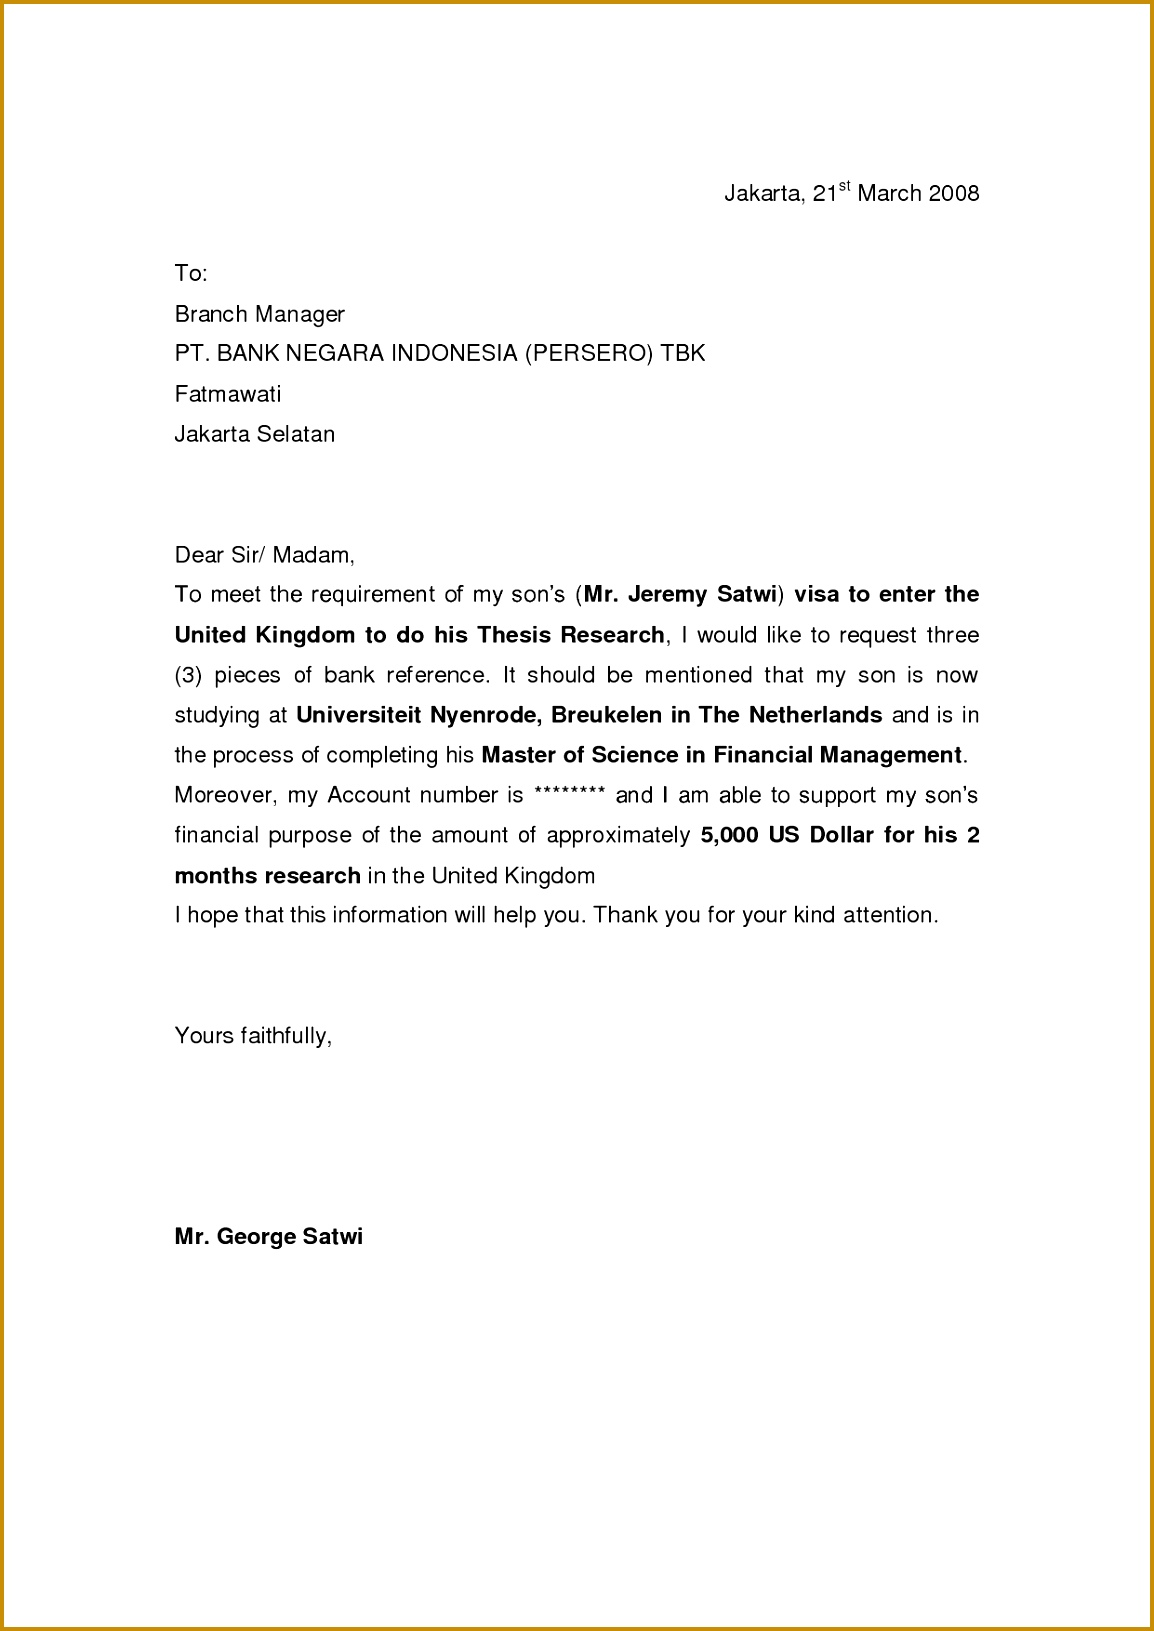 Sample Immigration Reference Letter Template on for support marriage, written sister, professional character, address send, for employee, for married couple, personal recommendation for, moral character,